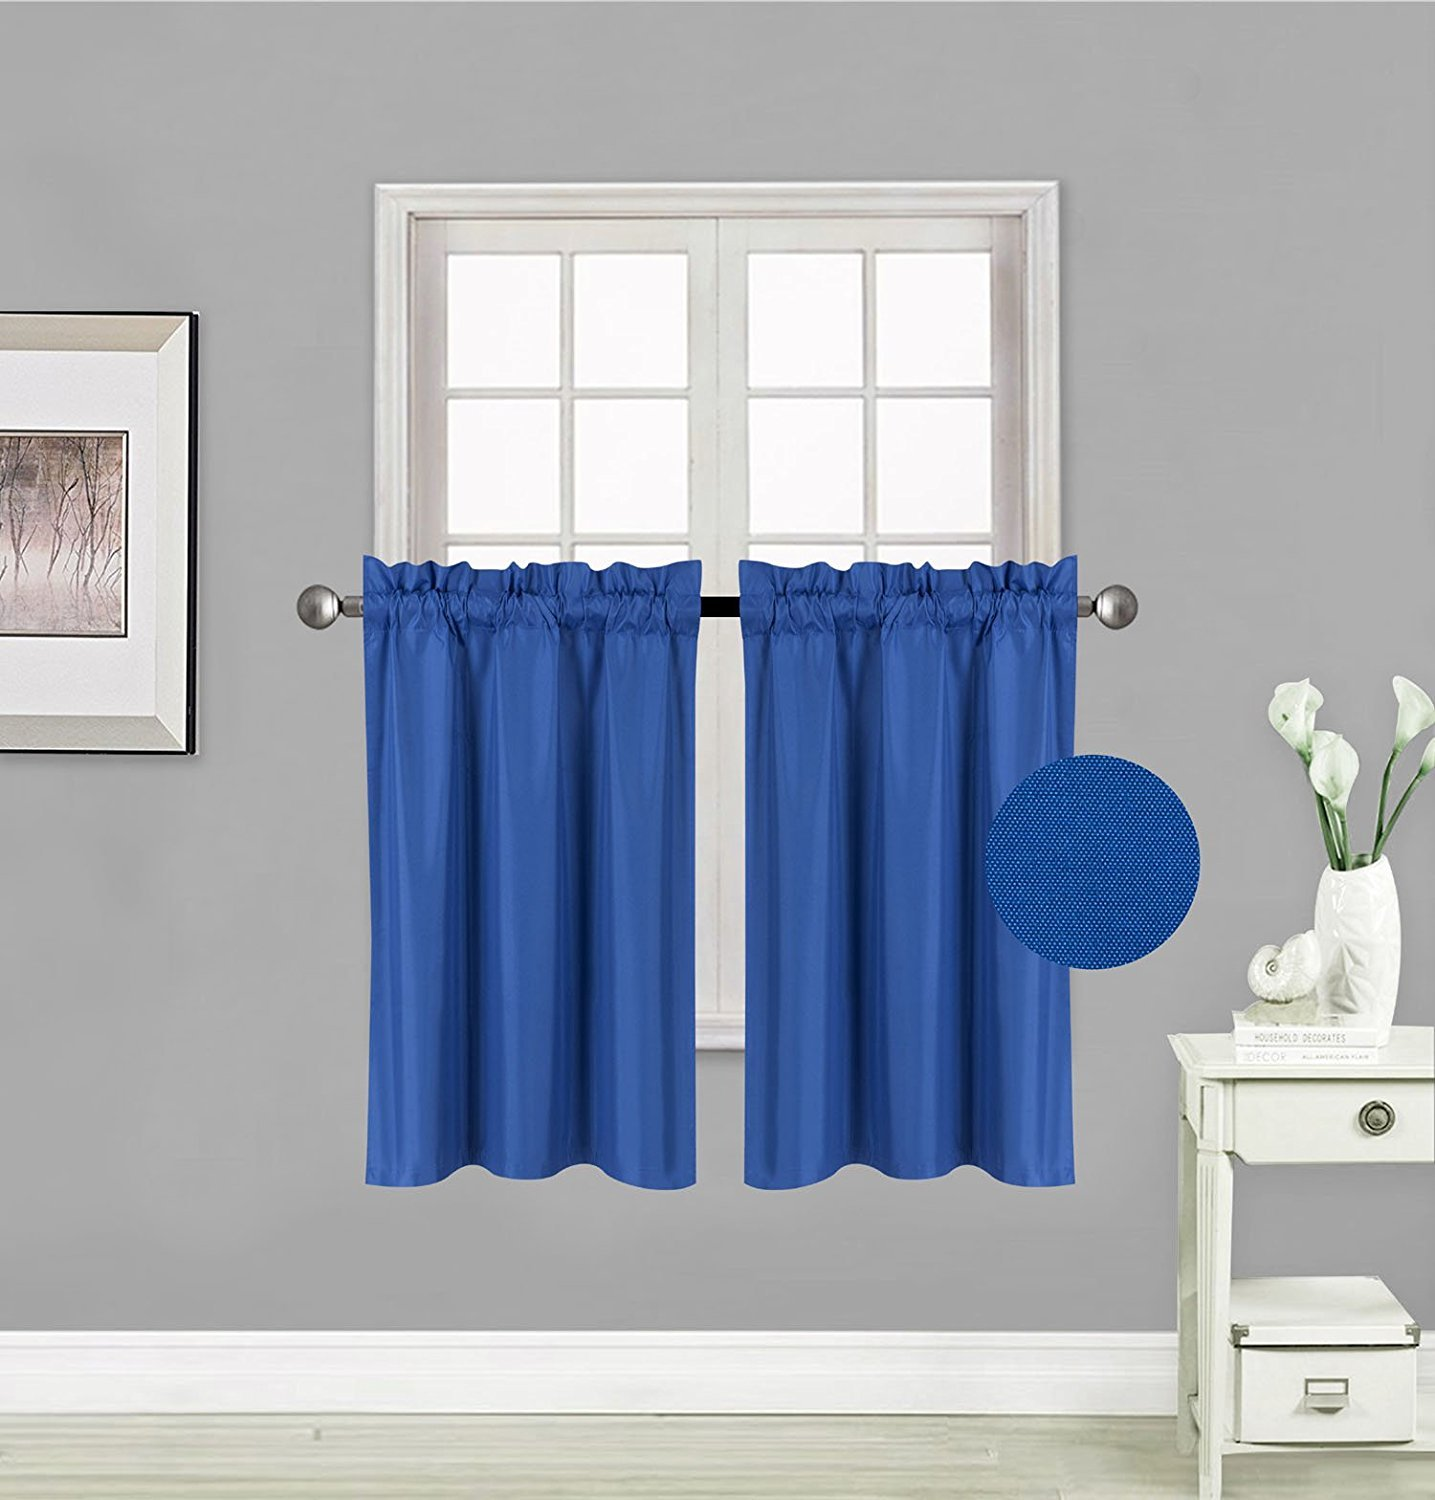 Fancy Collection 2 Panel Curtains Blackout Draperies Thermal Insulated Solid Royal Blue Rod Pocket Top Blackout Drapes Each Panel is 27'' W X 36'' L Each for Kid's Room, Bathroom, Kitchen New